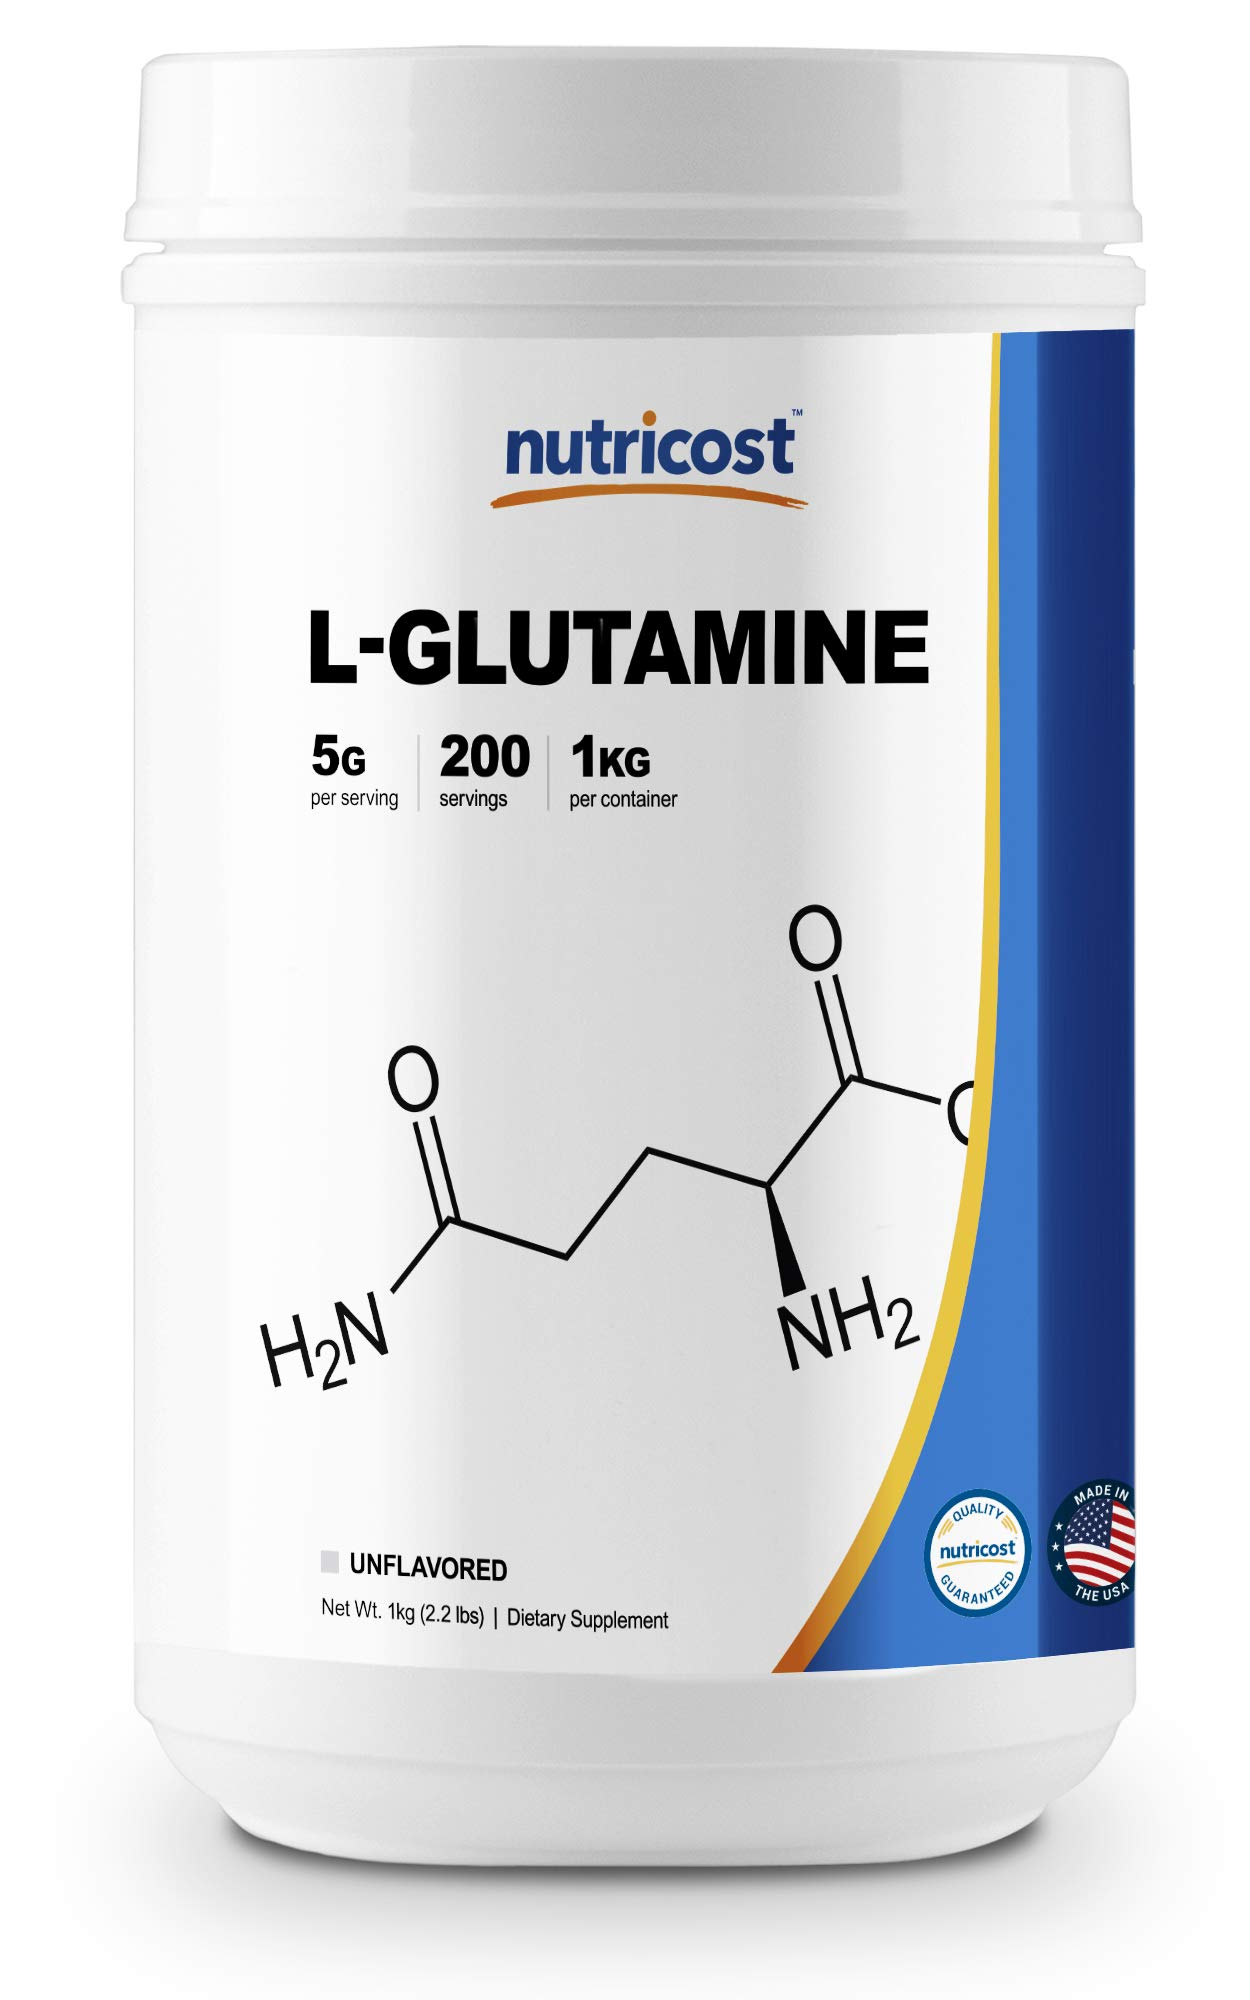 Nutricost Taurine Powder 1kg 500 Servings Health Cycles L Glutamine 1 Kg Pure 5000mg Per Serving